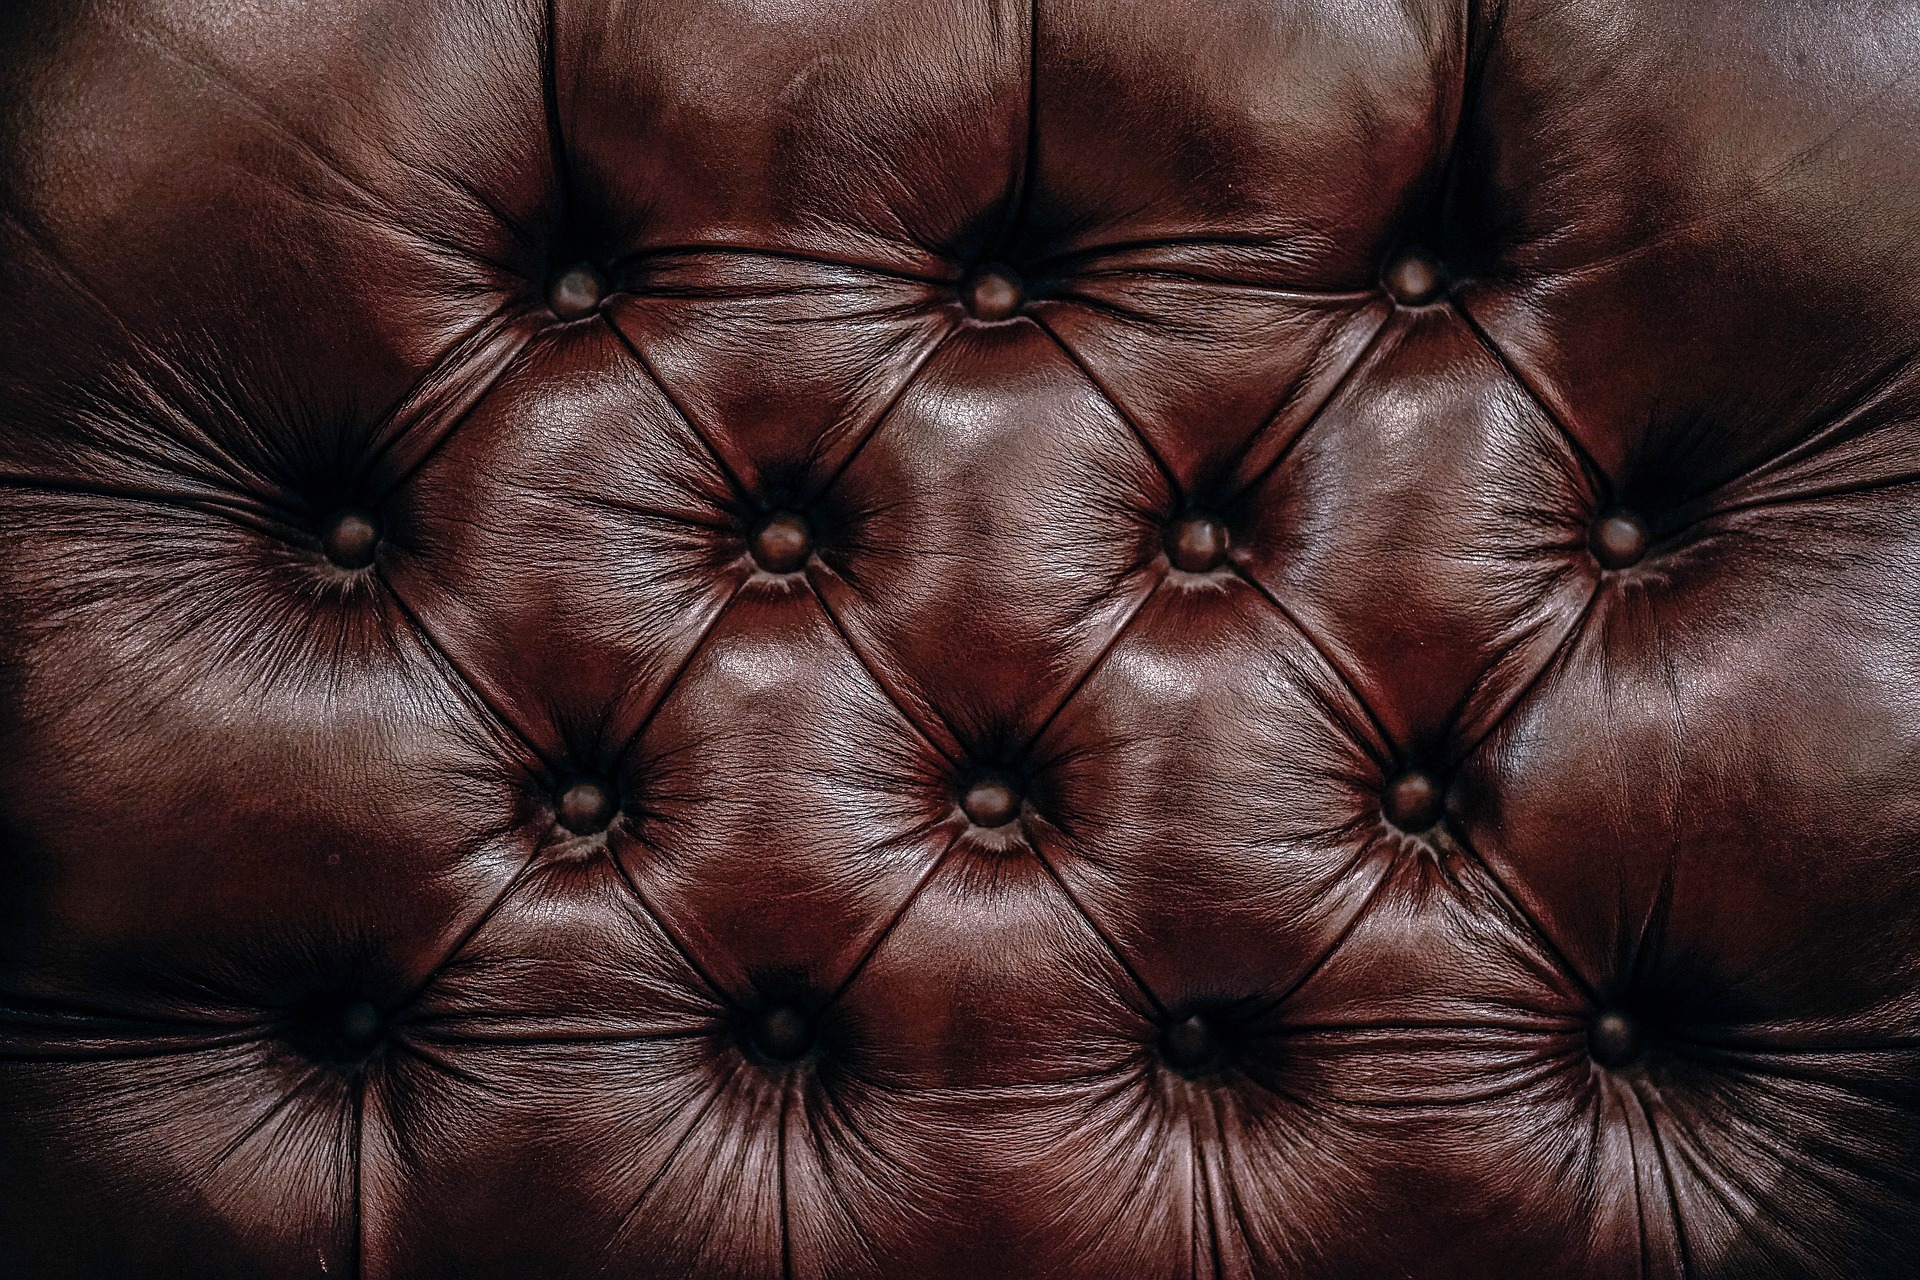 Brown Tufting Leather And Ways To Remove Bad Smells From